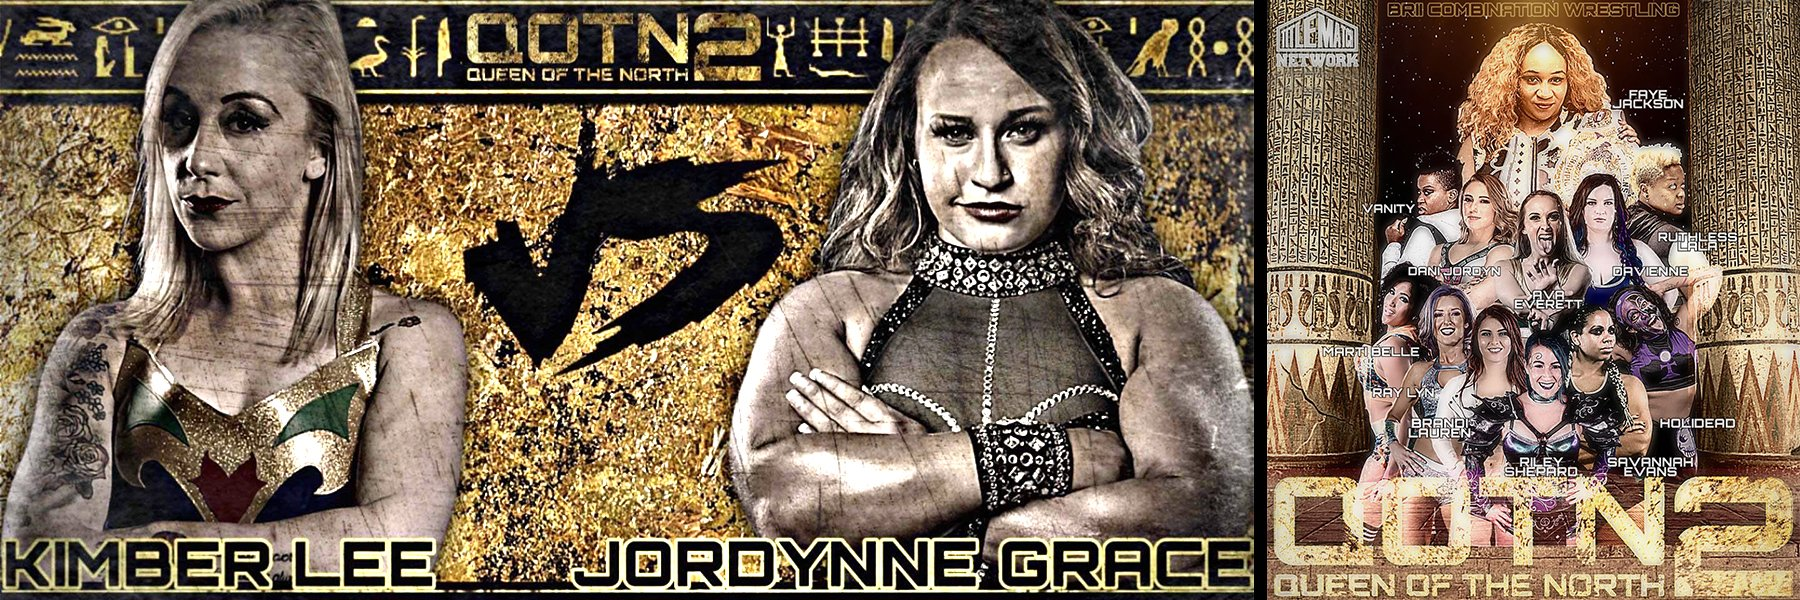 BCW Queen of the North 2: Faye Jackson, Jordynne Grace, Kimber Lee